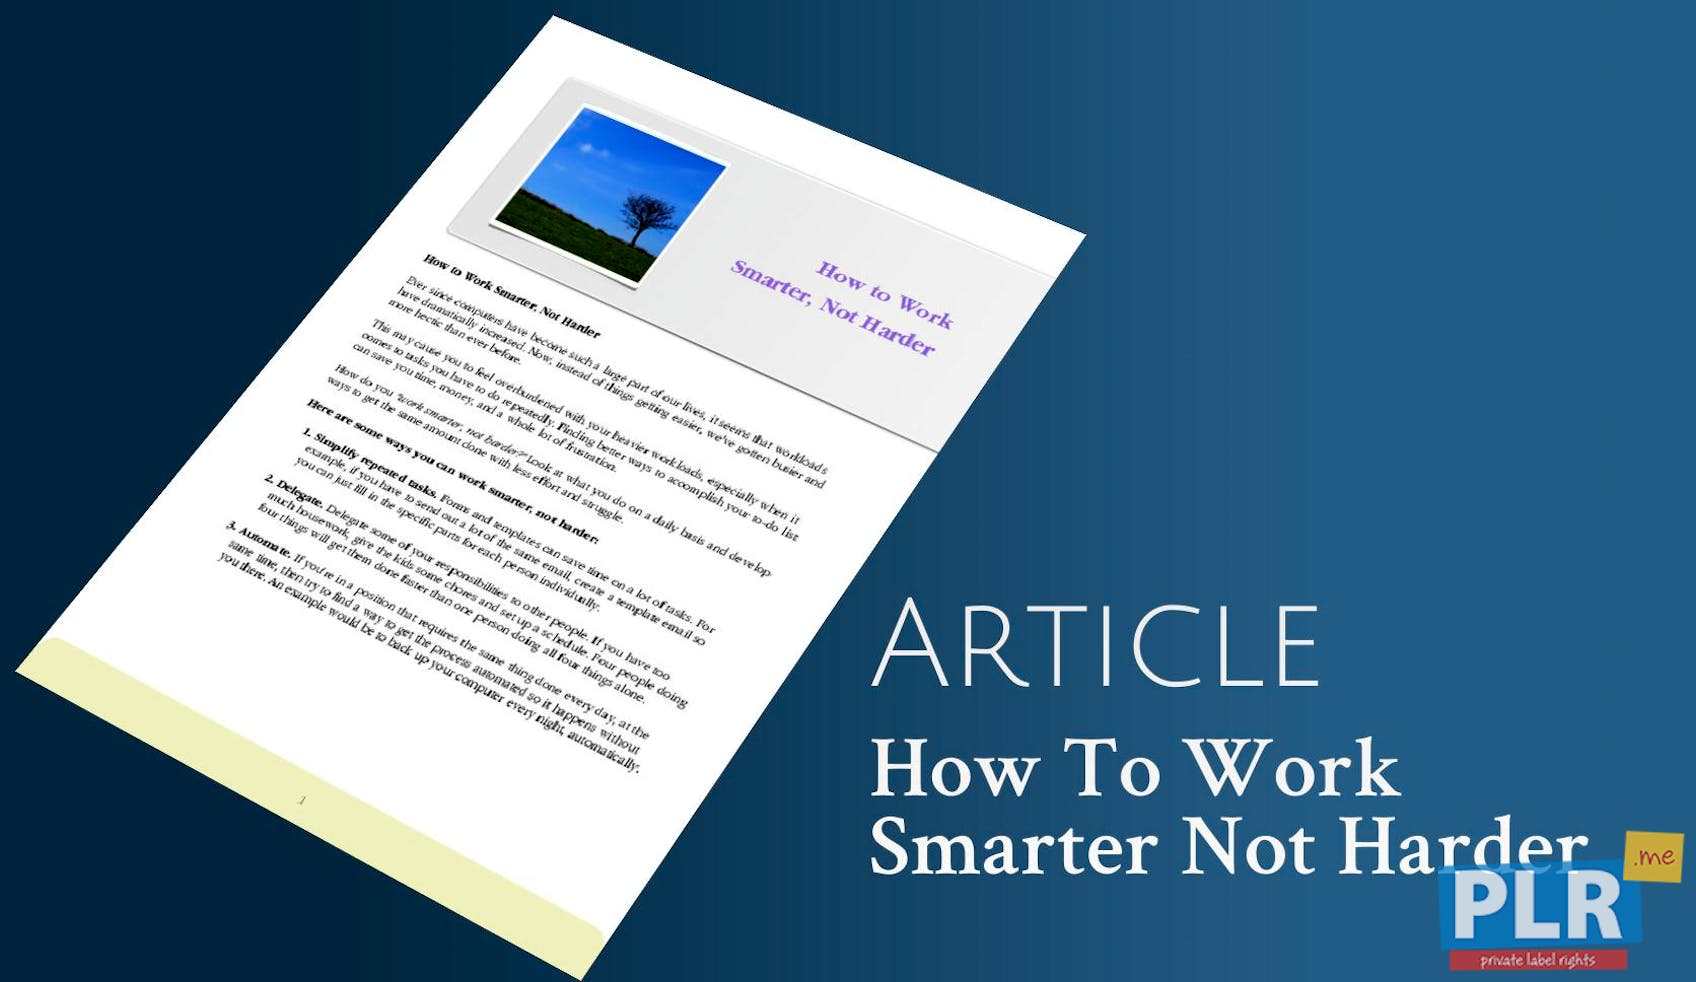 Working smarter not harder articles